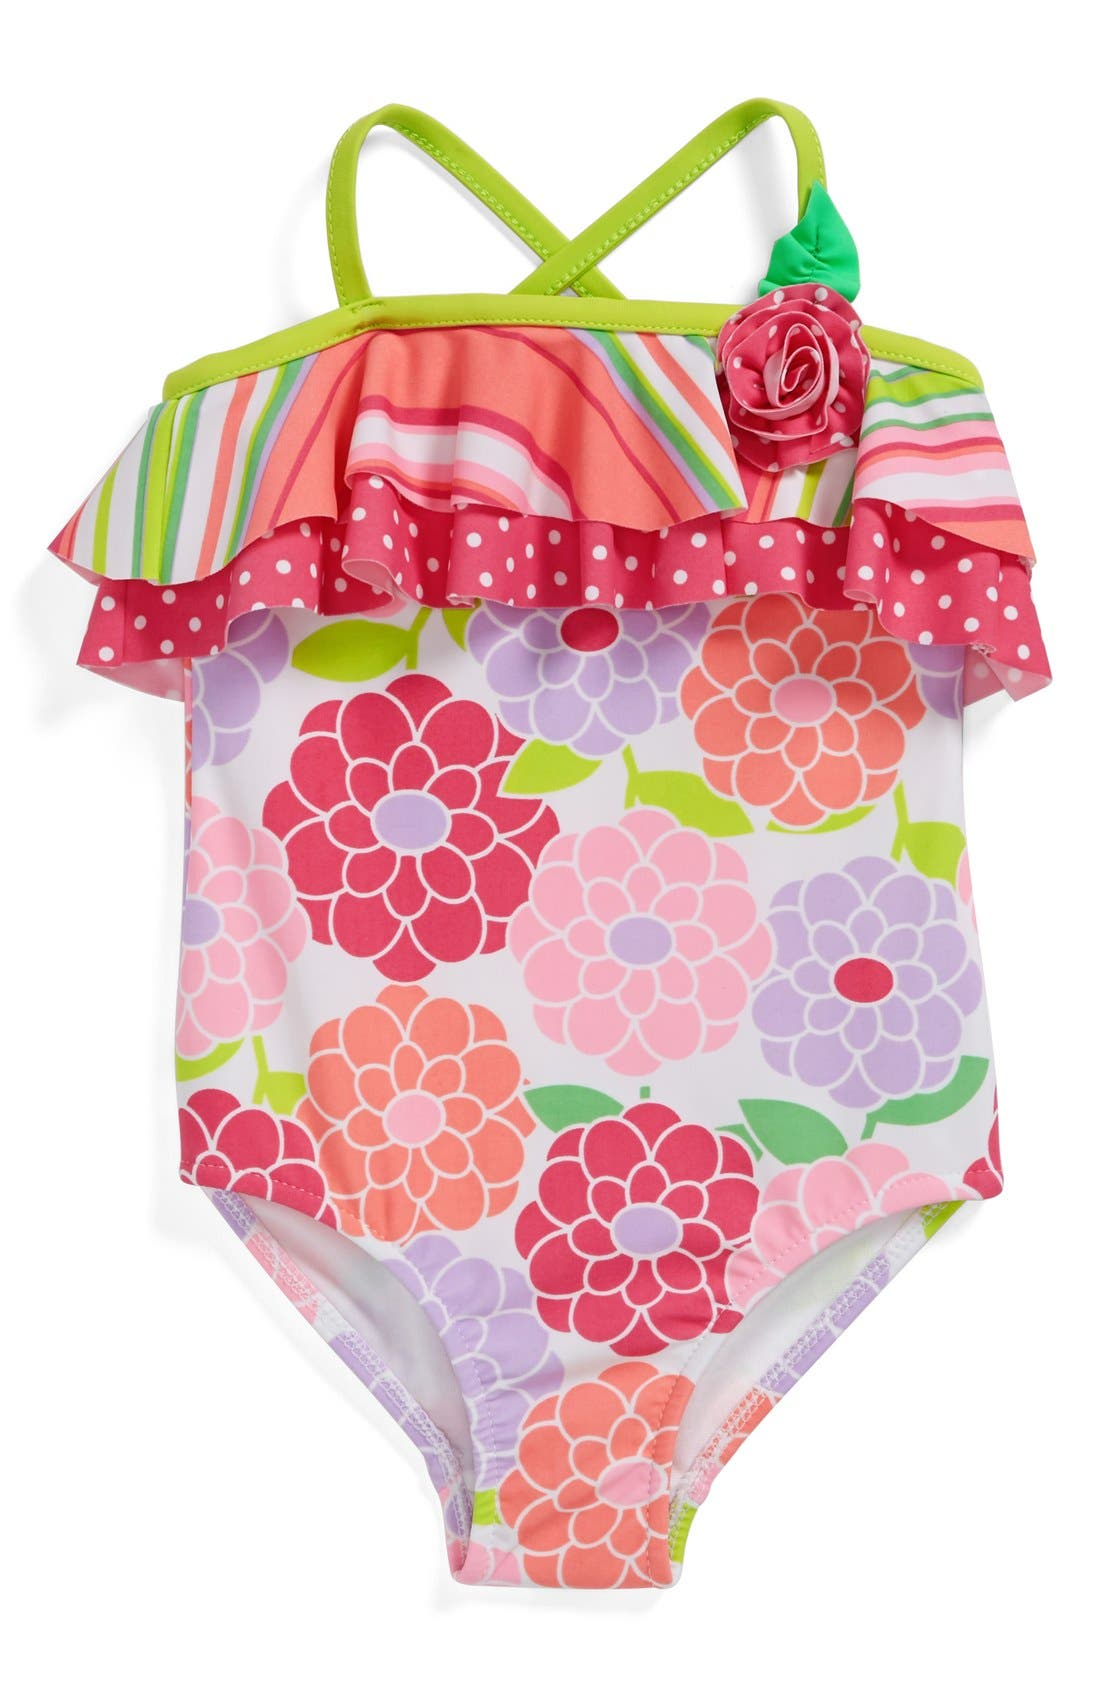 Alternate Image 1 Selected - Love U Lots One-Piece Swimsuit (Toddler Girls)